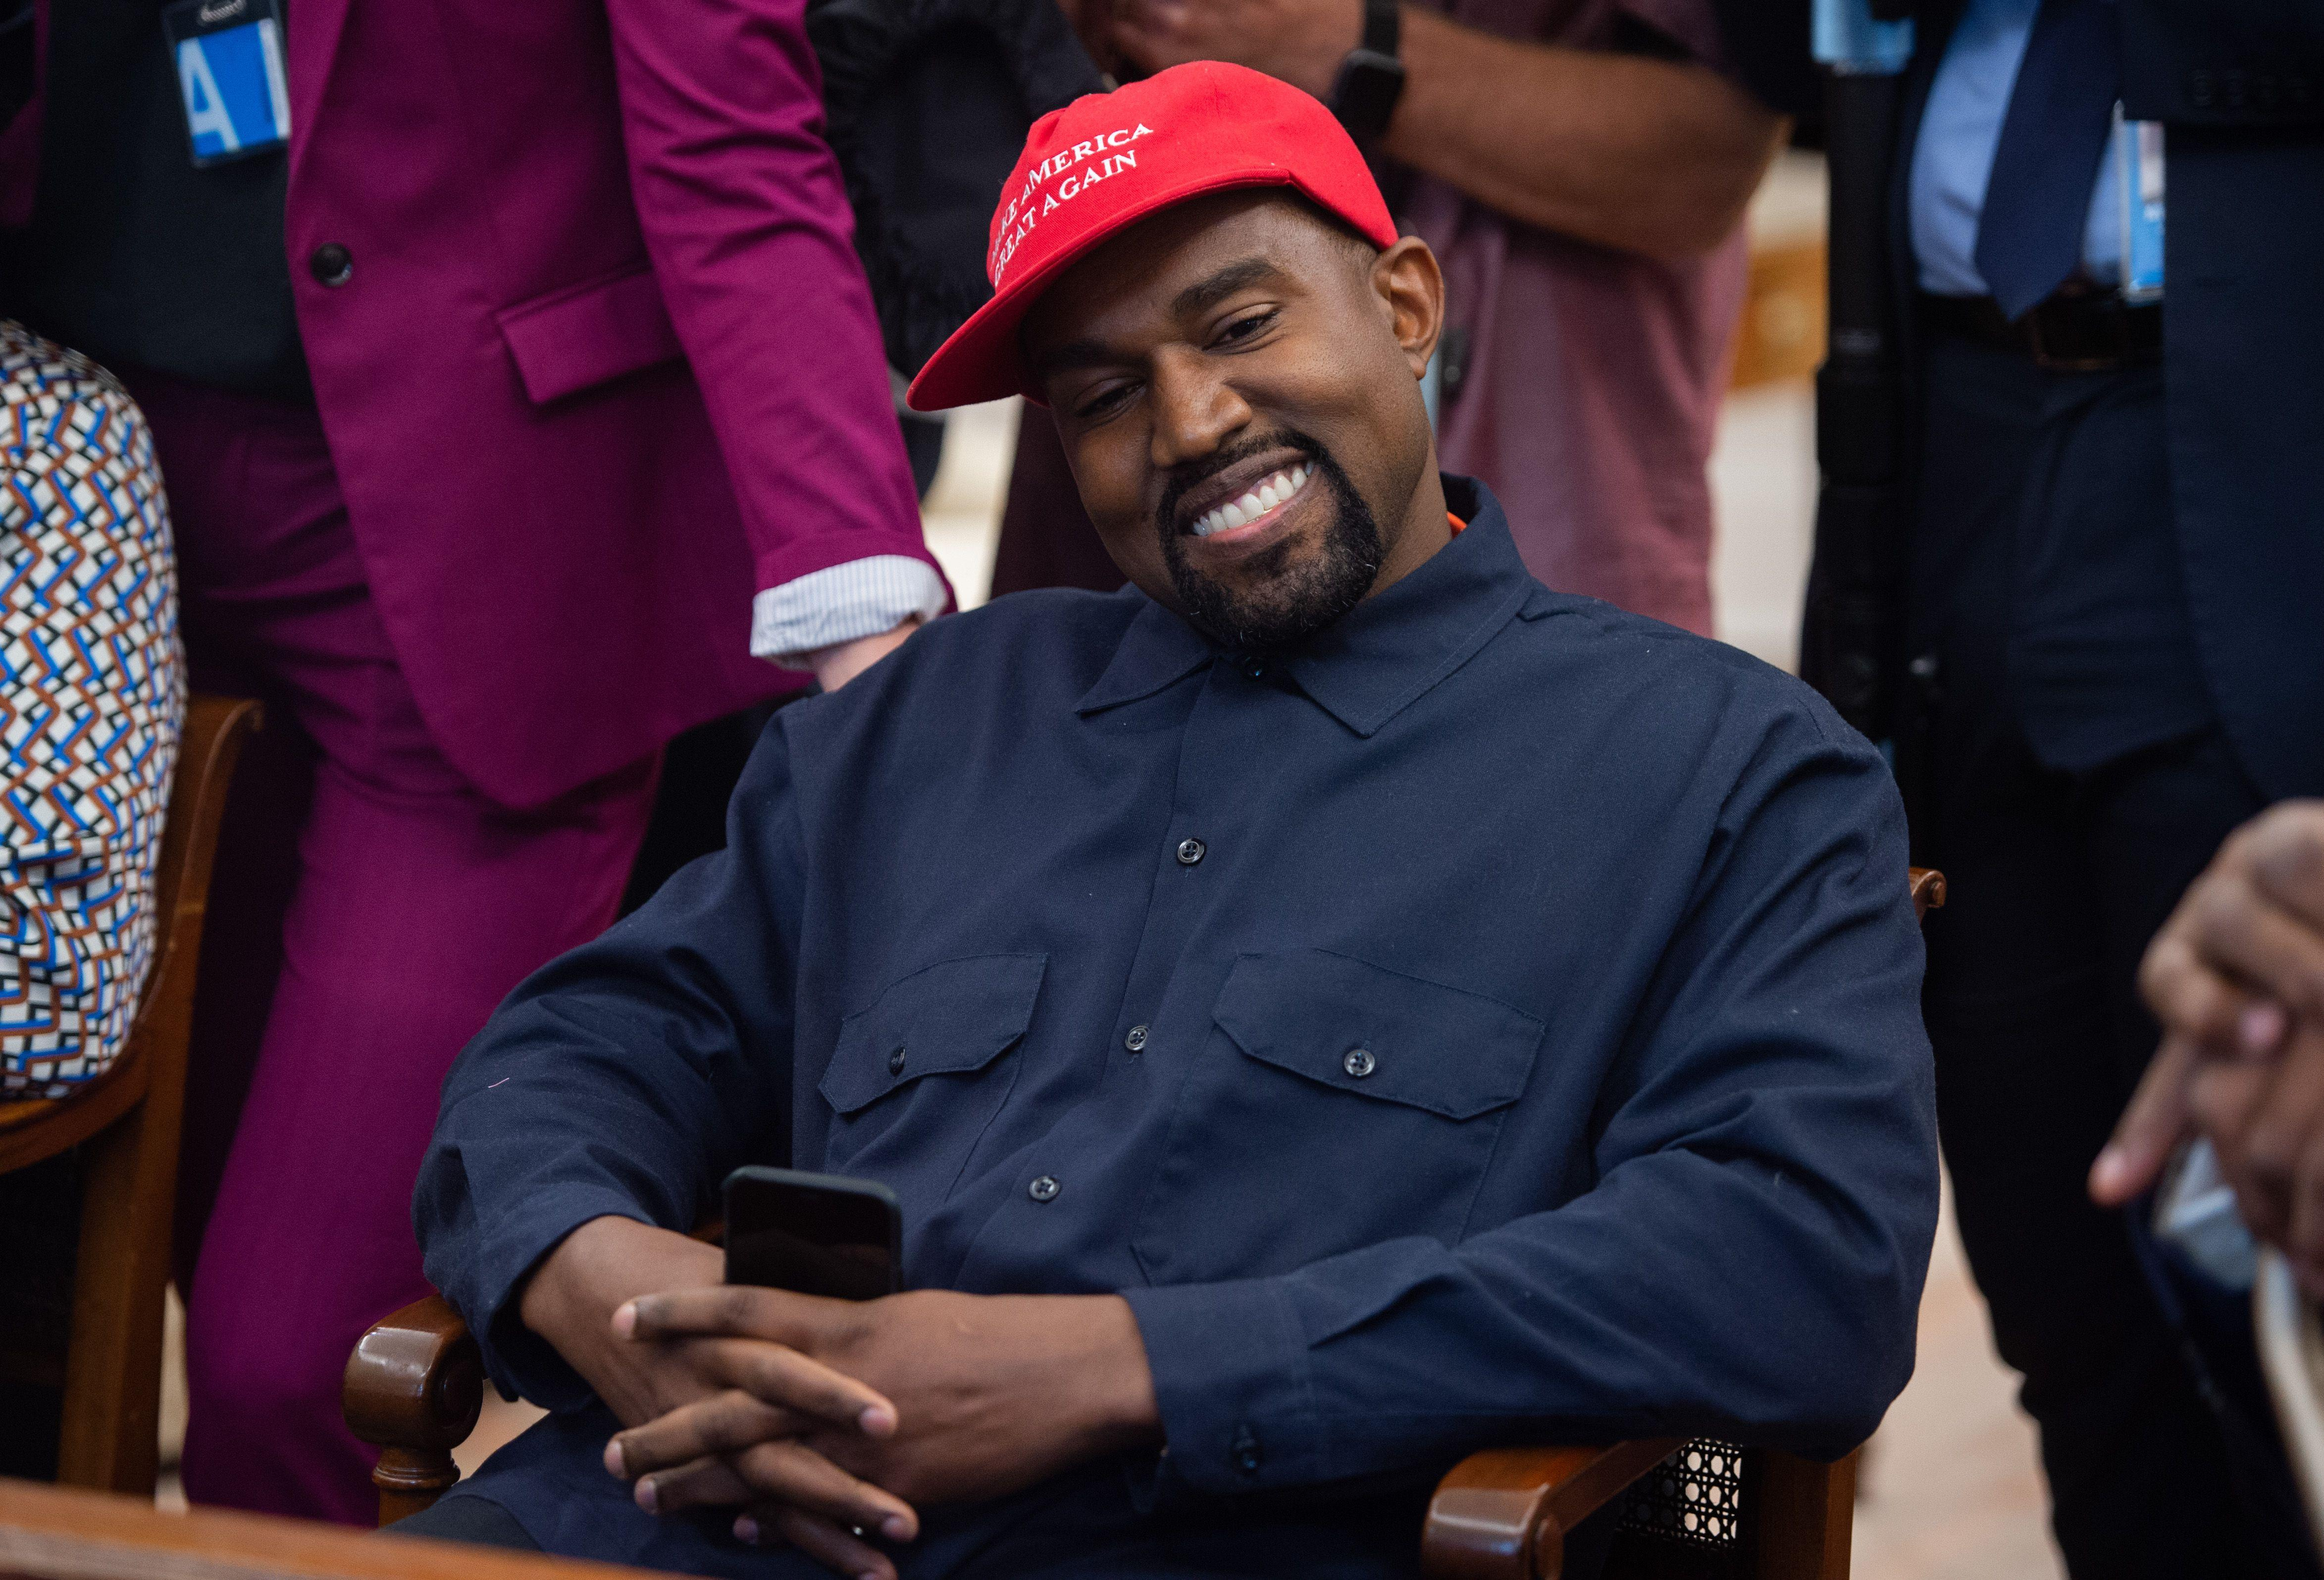 Kanye West says his calling is to be 'the leader of the free world' in lengthy Joe Rogan podcast